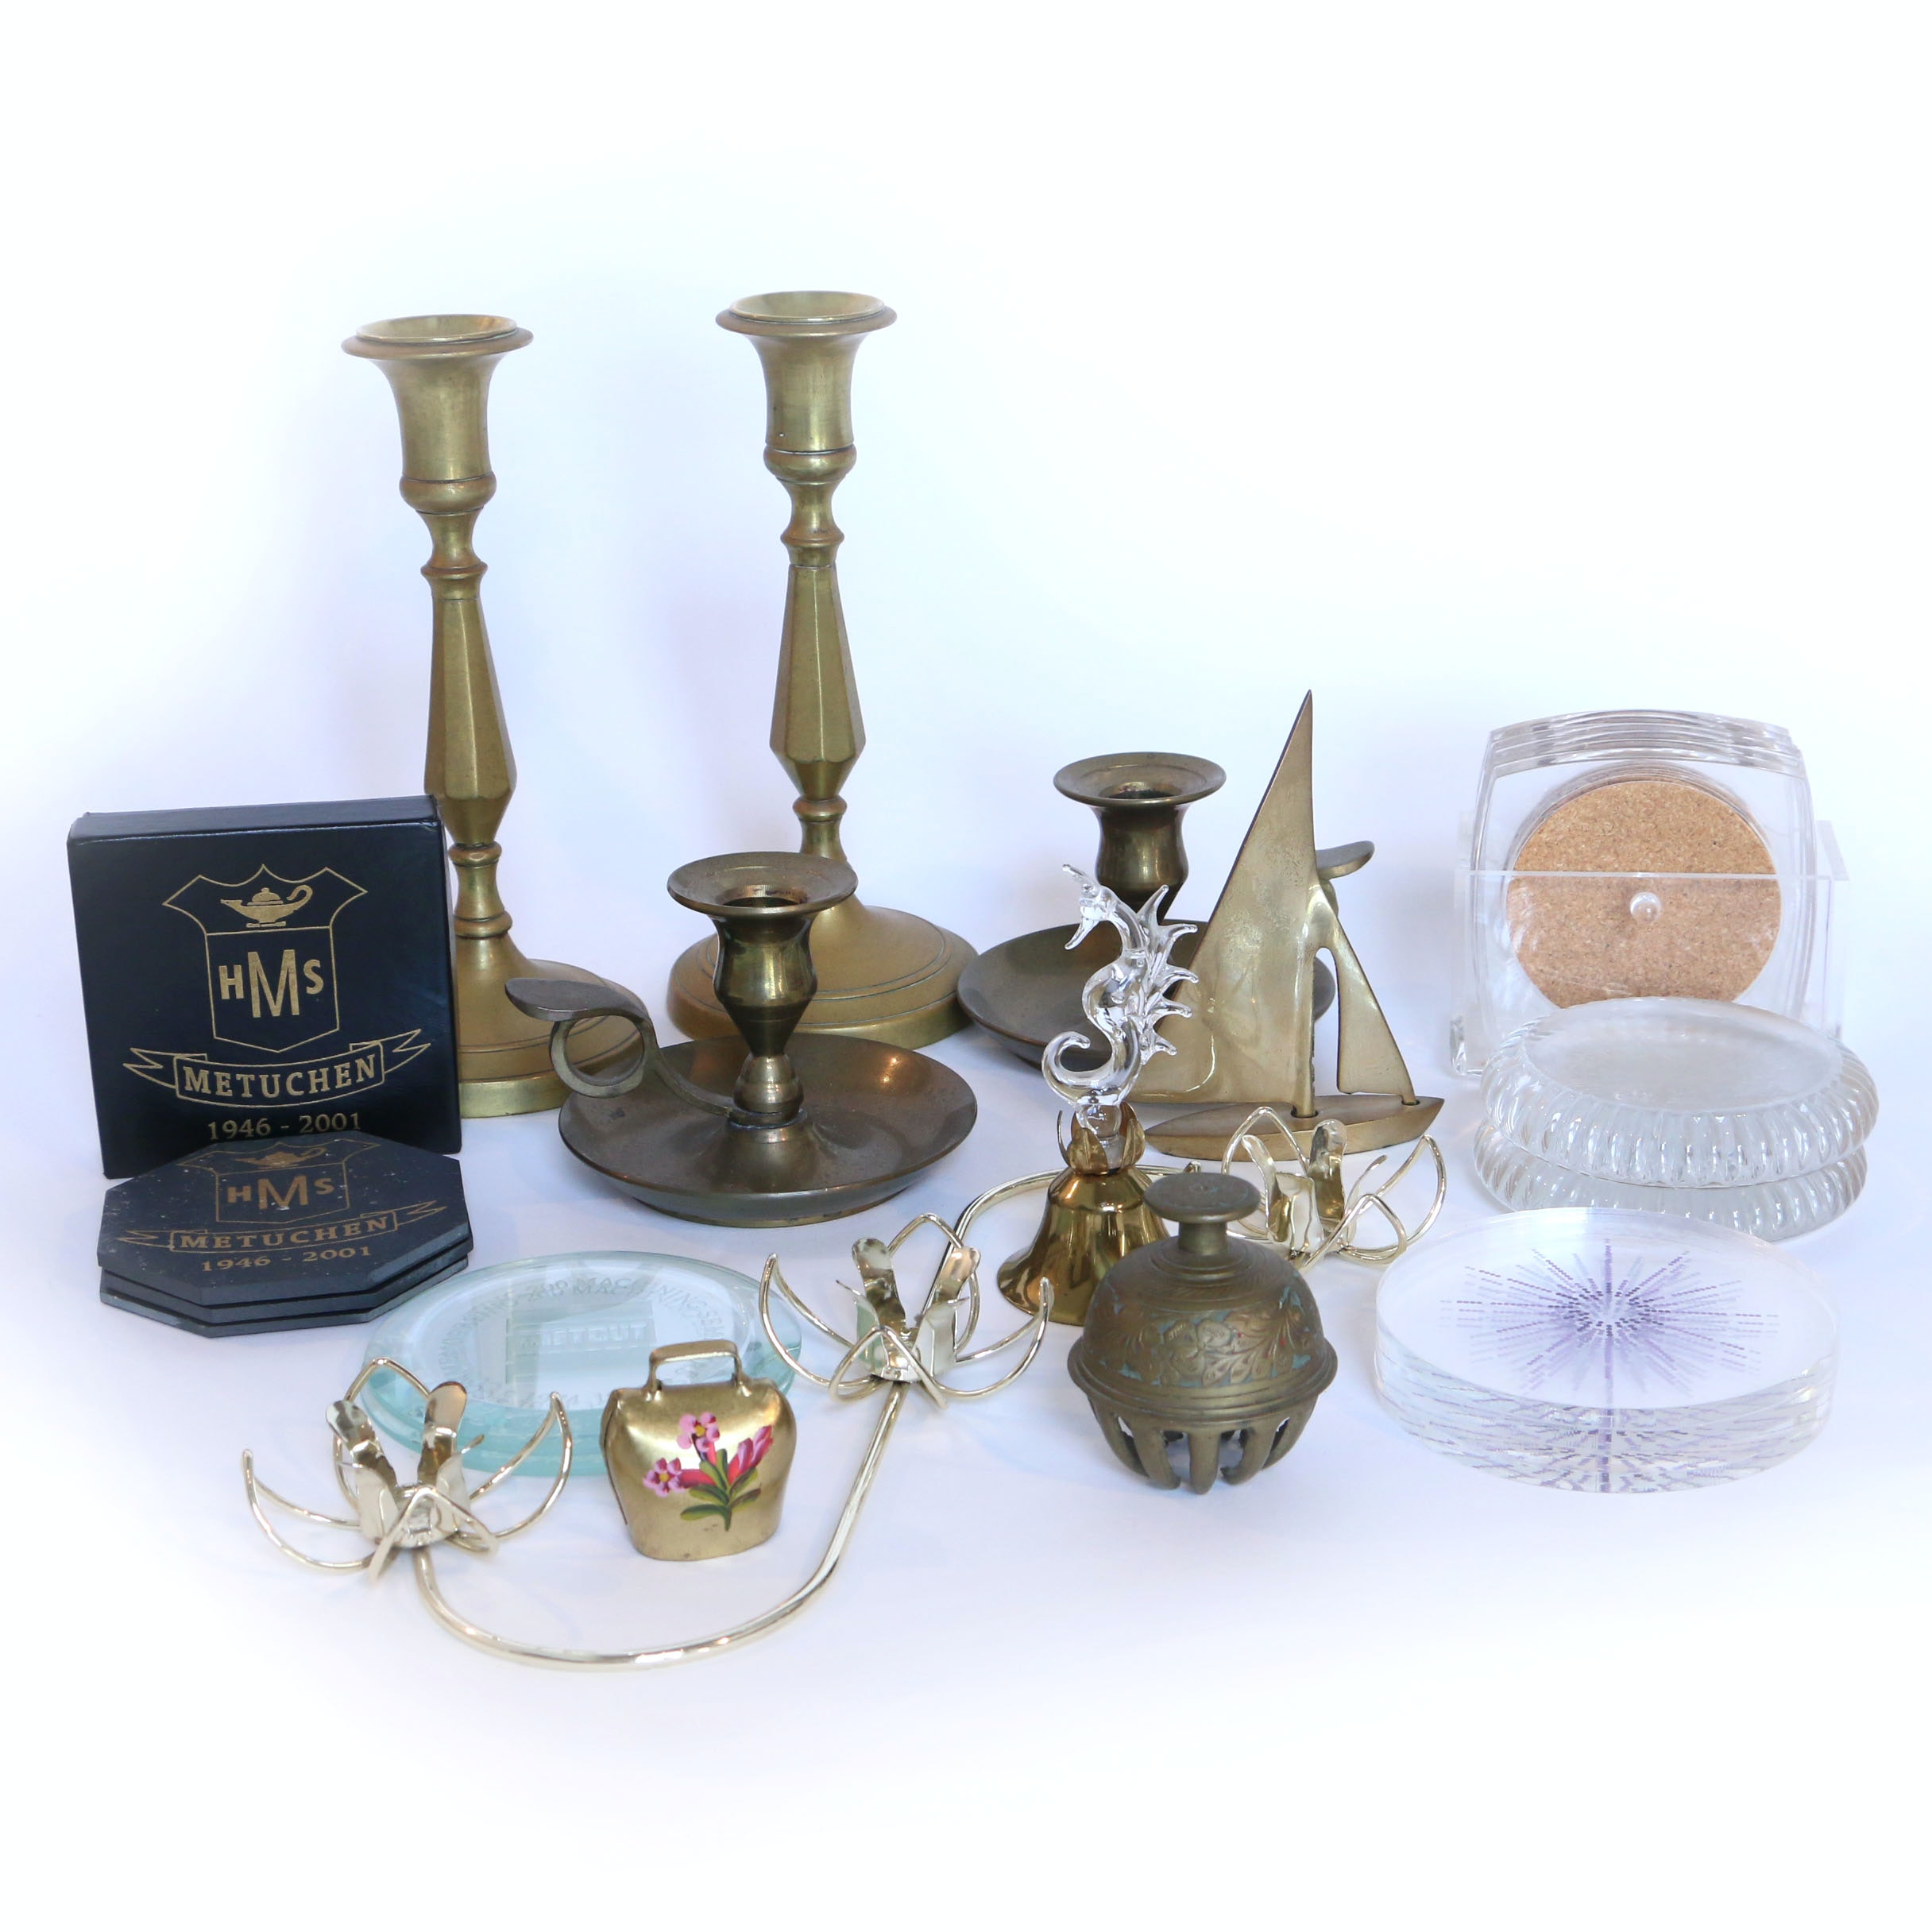 Assorted Brass Decor and Coasters